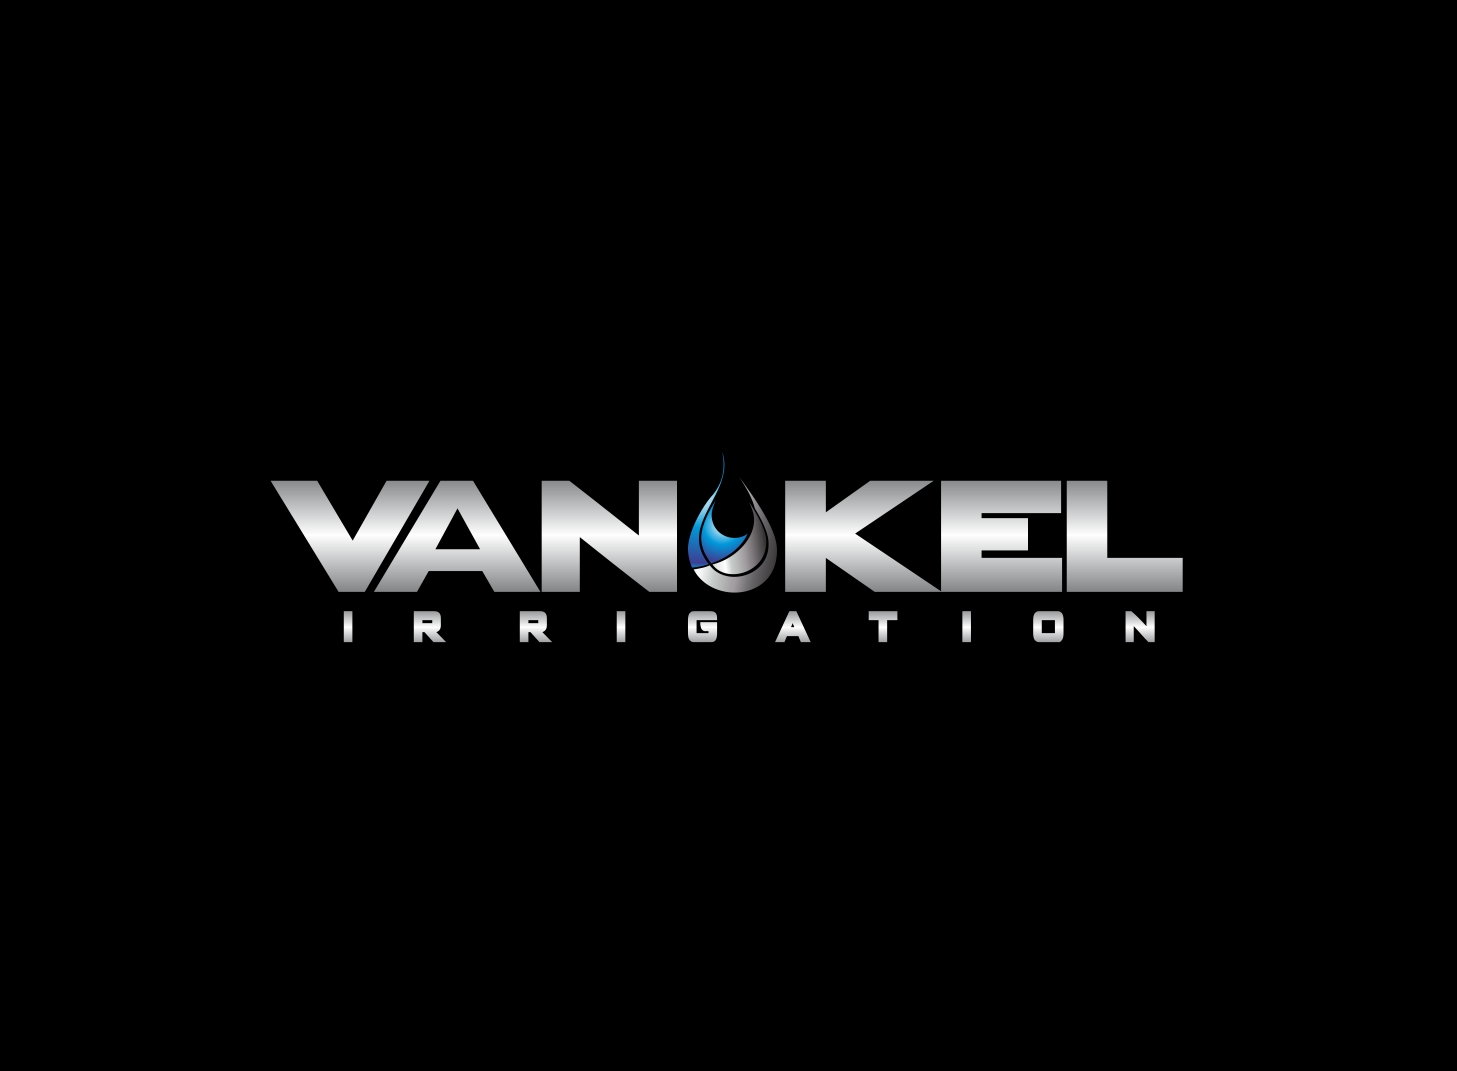 Logo Design by Zdravko Krulj - Entry No. 122 in the Logo Design Contest Van-Kel Irrigation Logo Design.